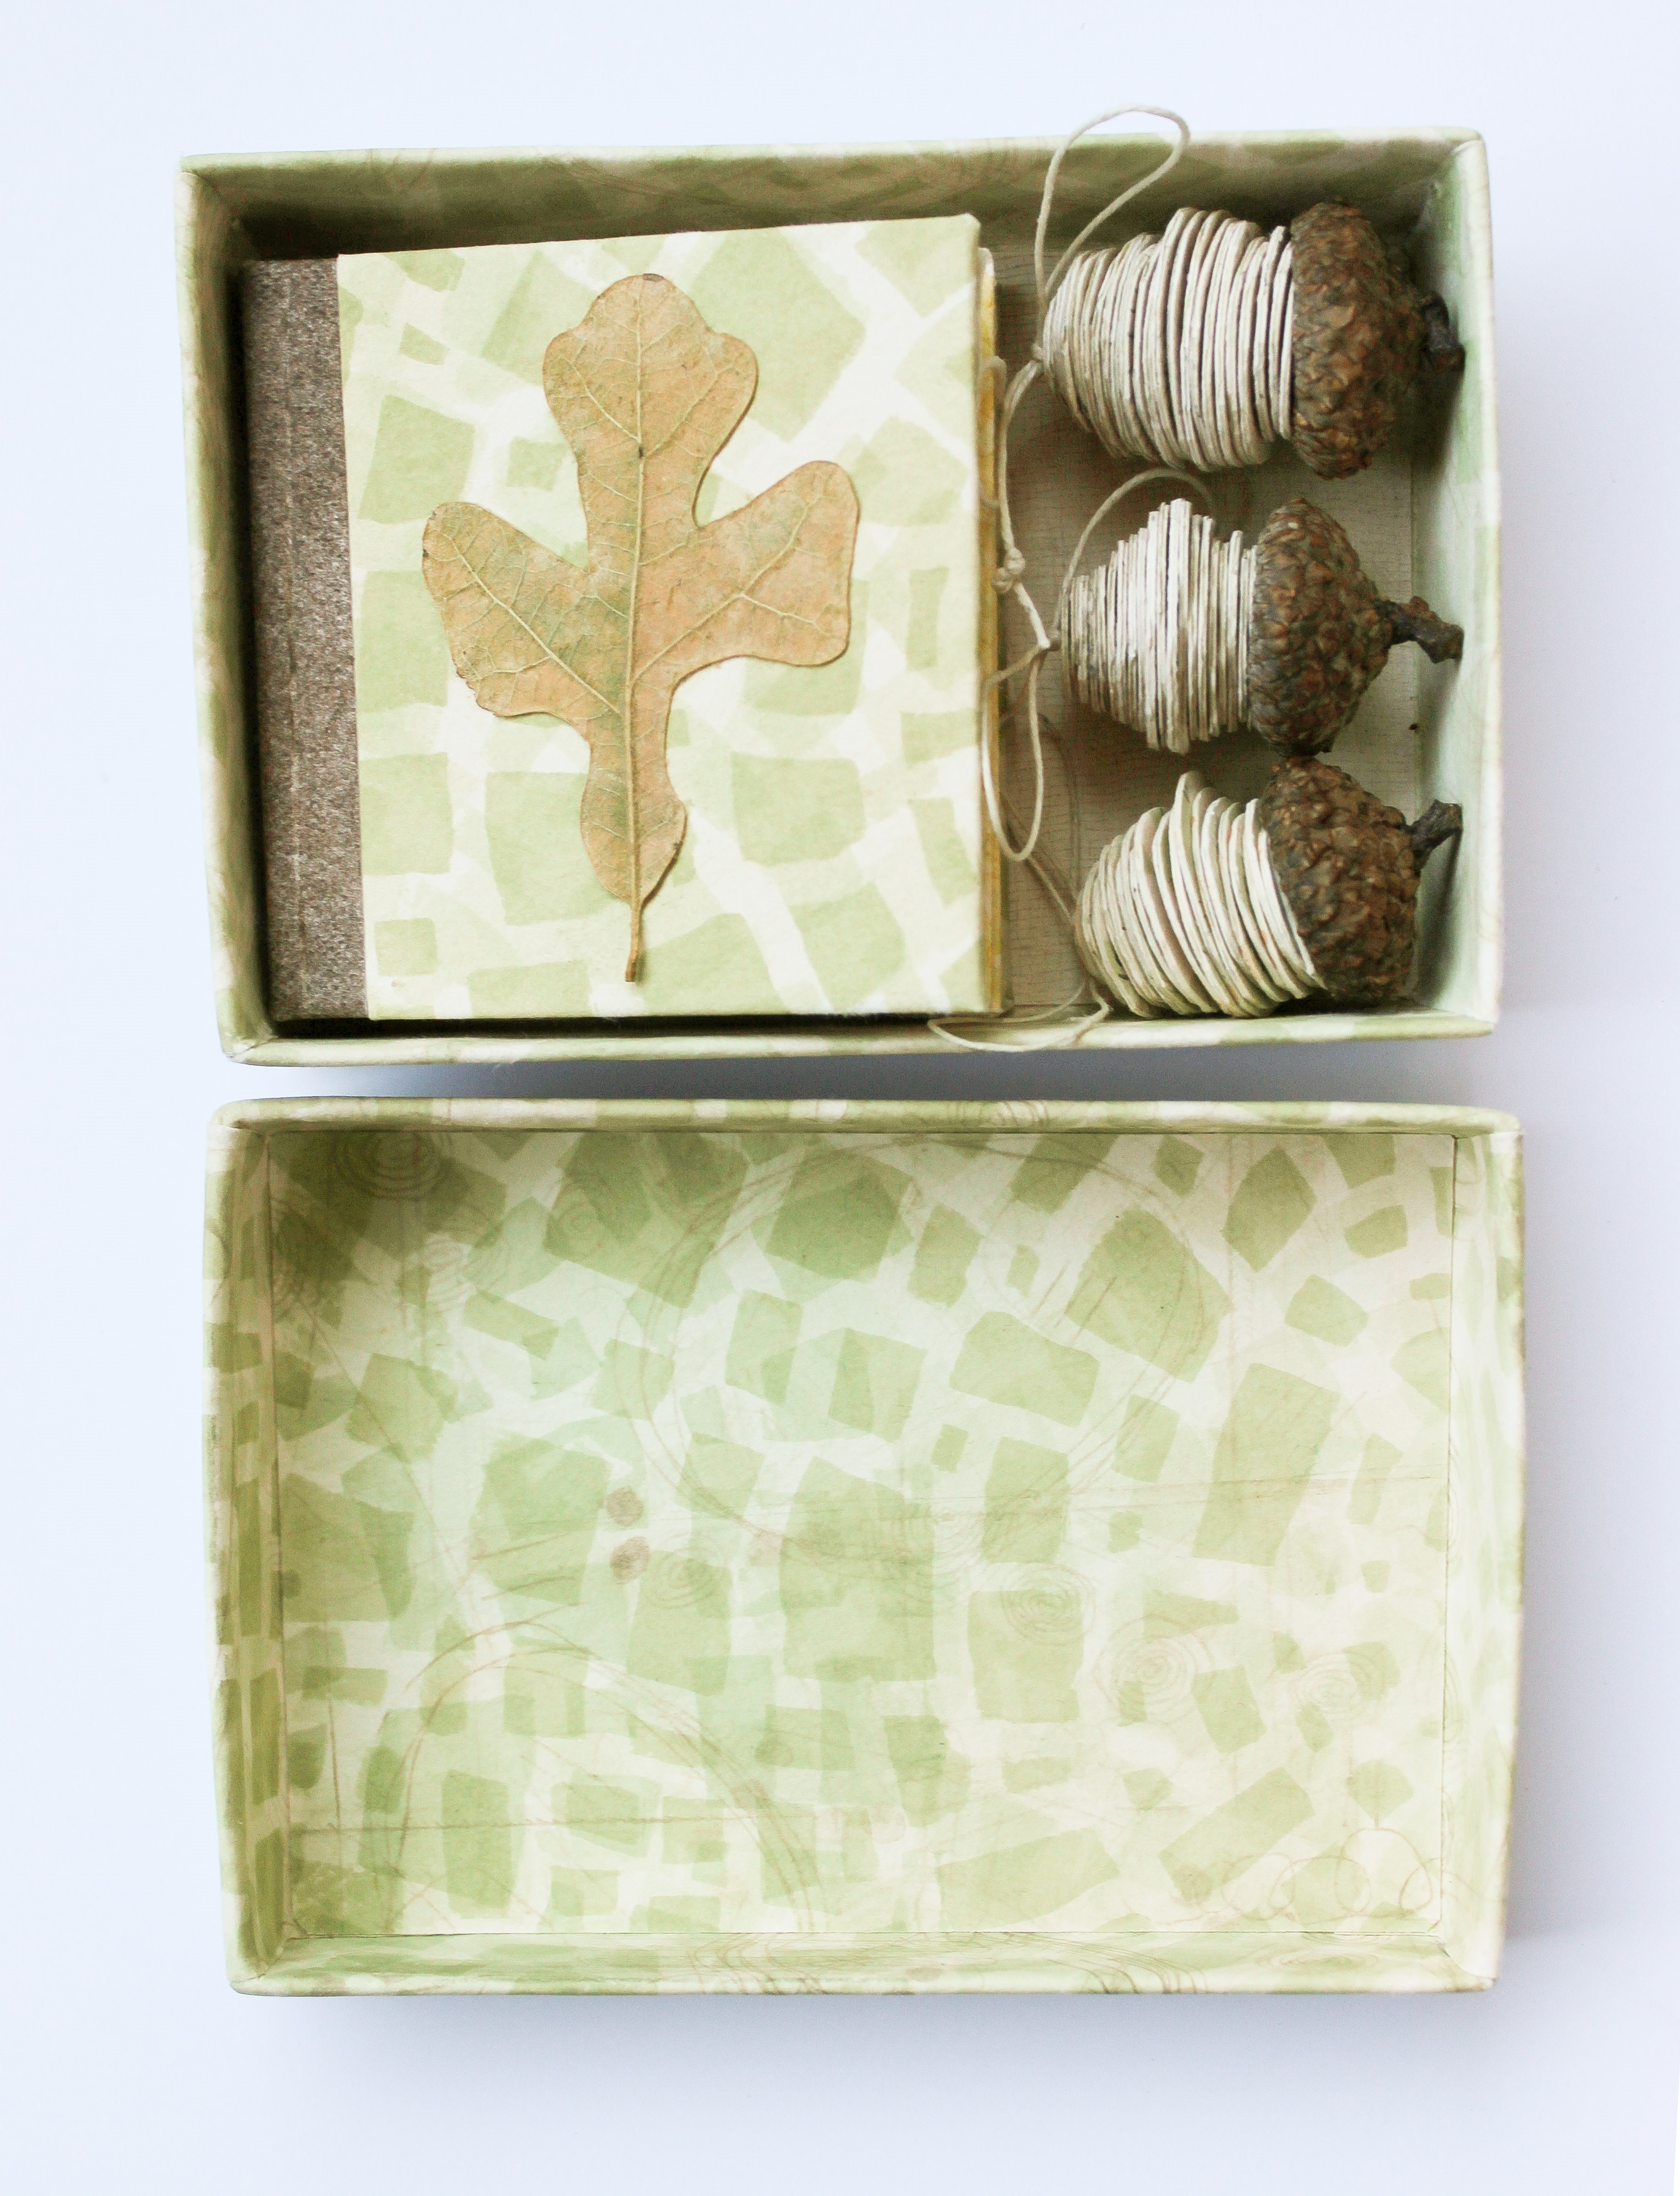 A photo of a patterned box holding string-wrapped acorns and a handmade book with a leaf on the front